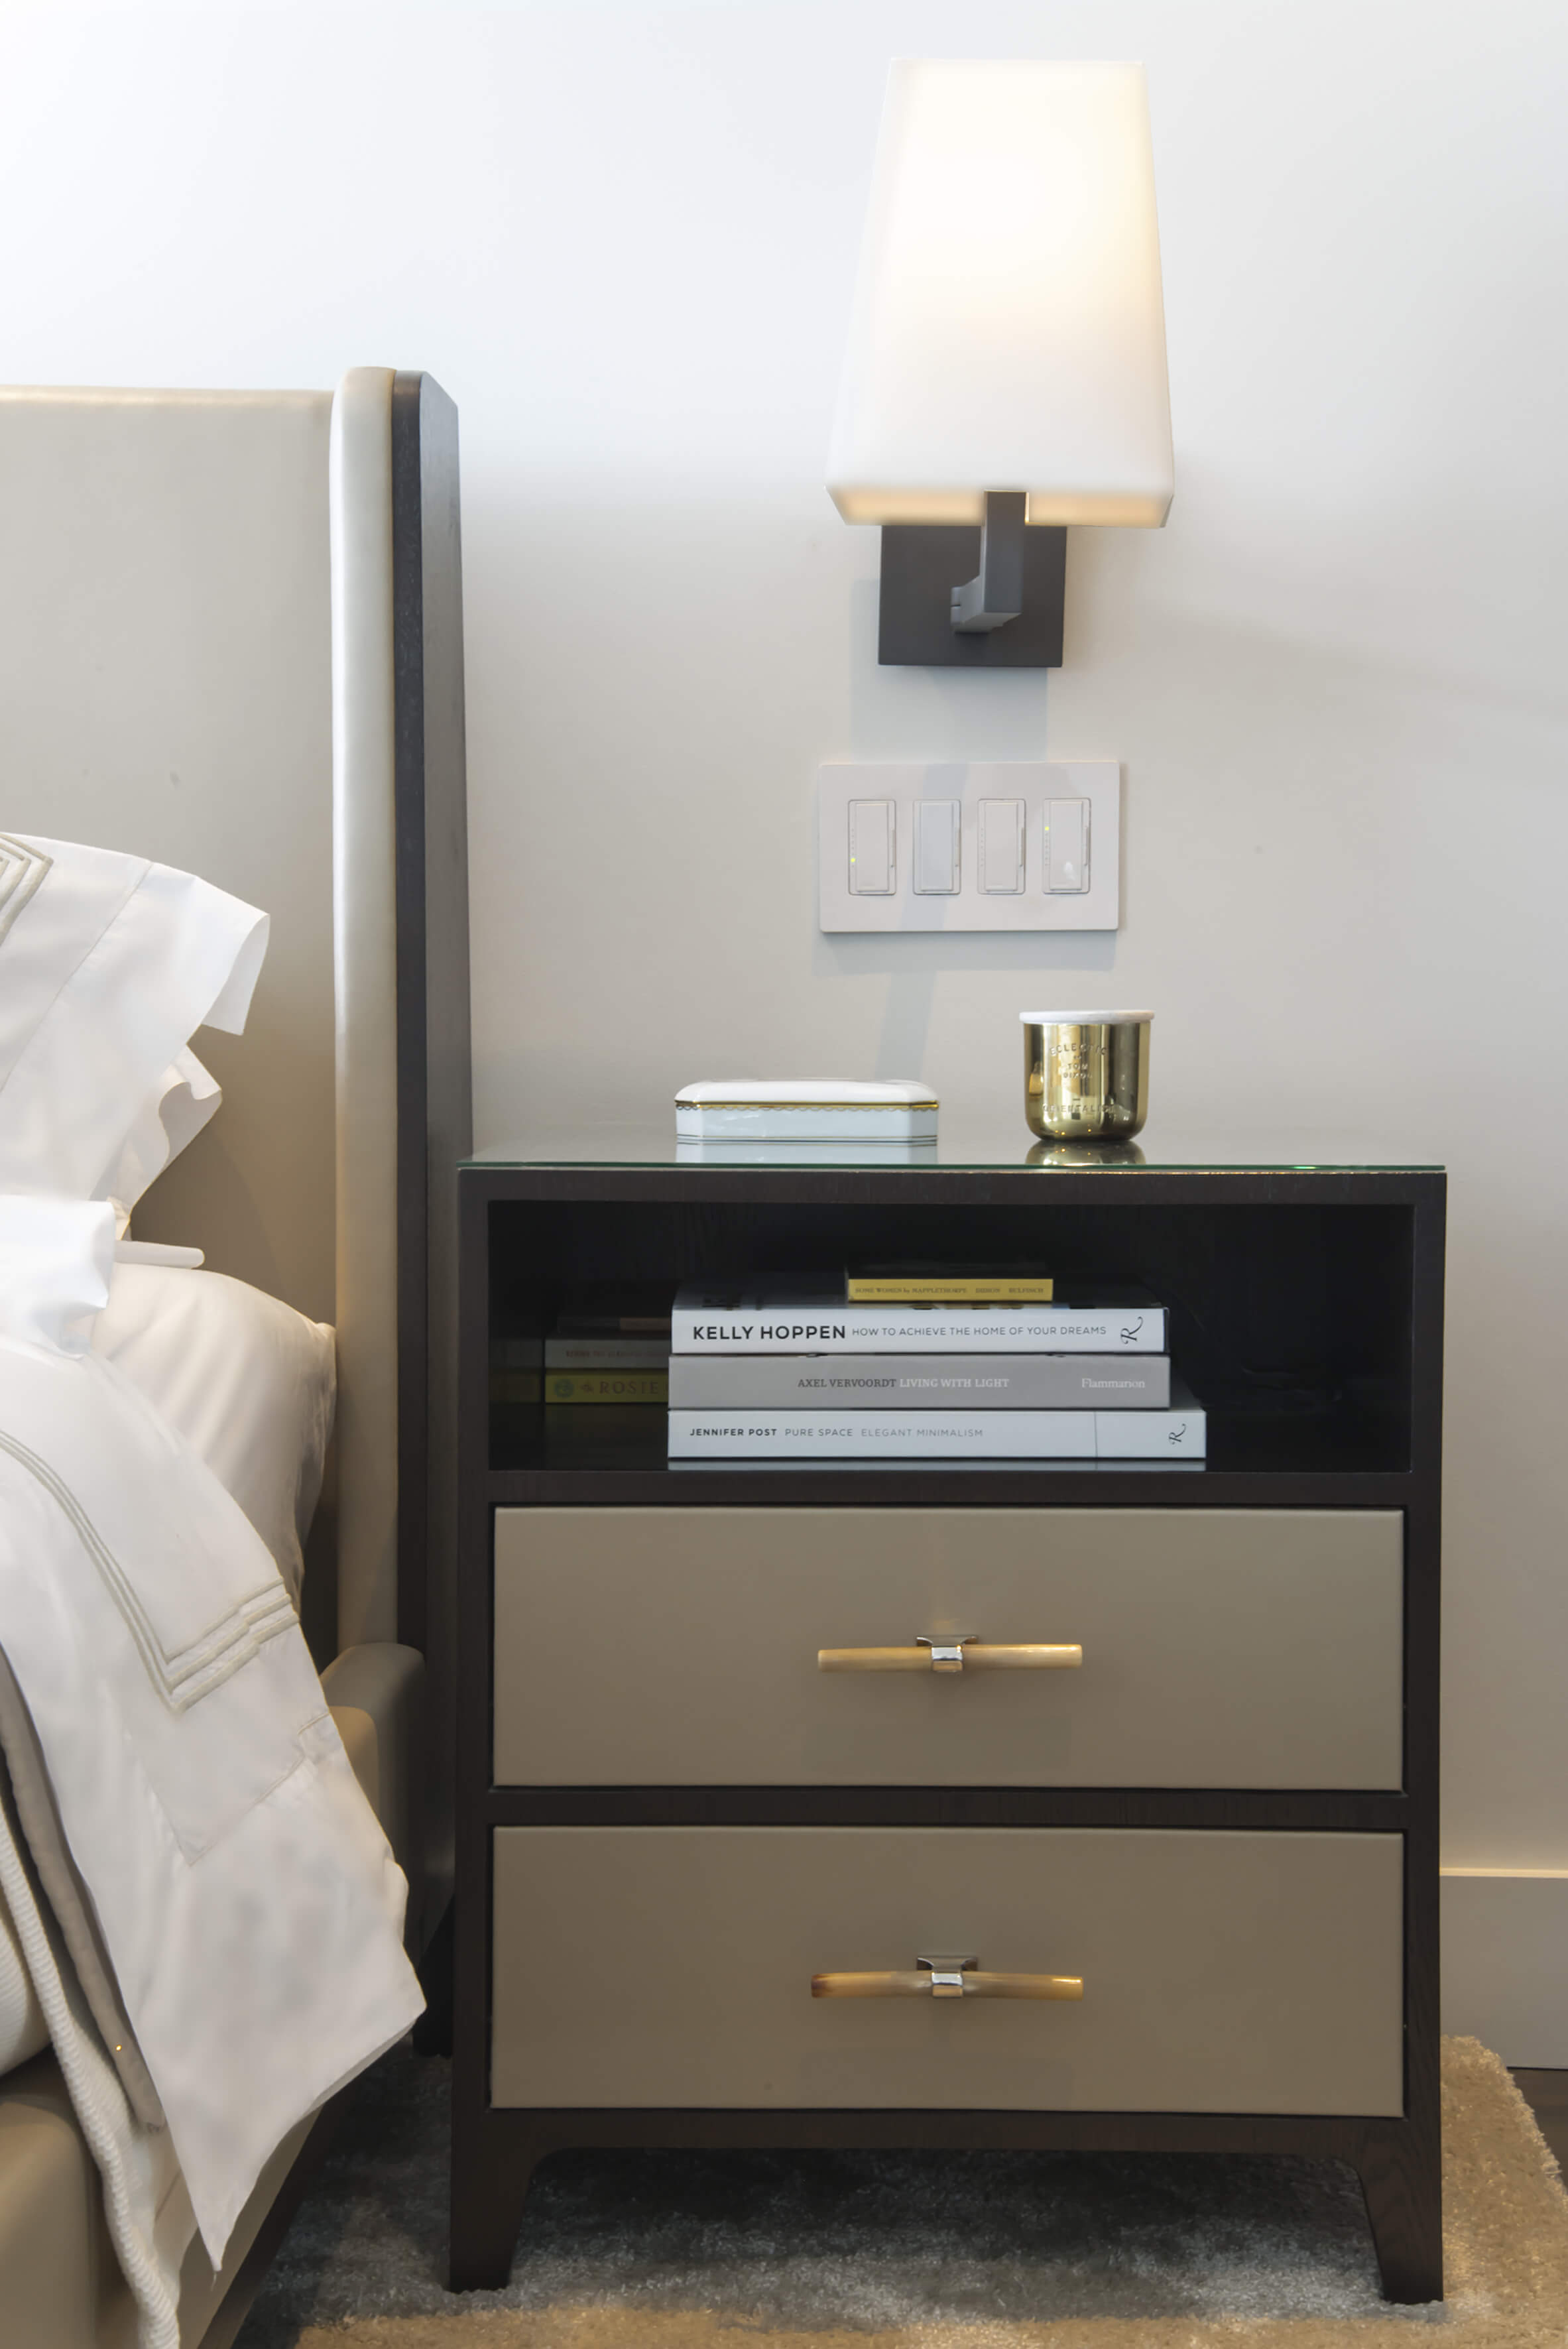 Detail shot of custom designed nightstand. This nightstand was custom designed by interior designer, Renan Menninger of RM Interiors.